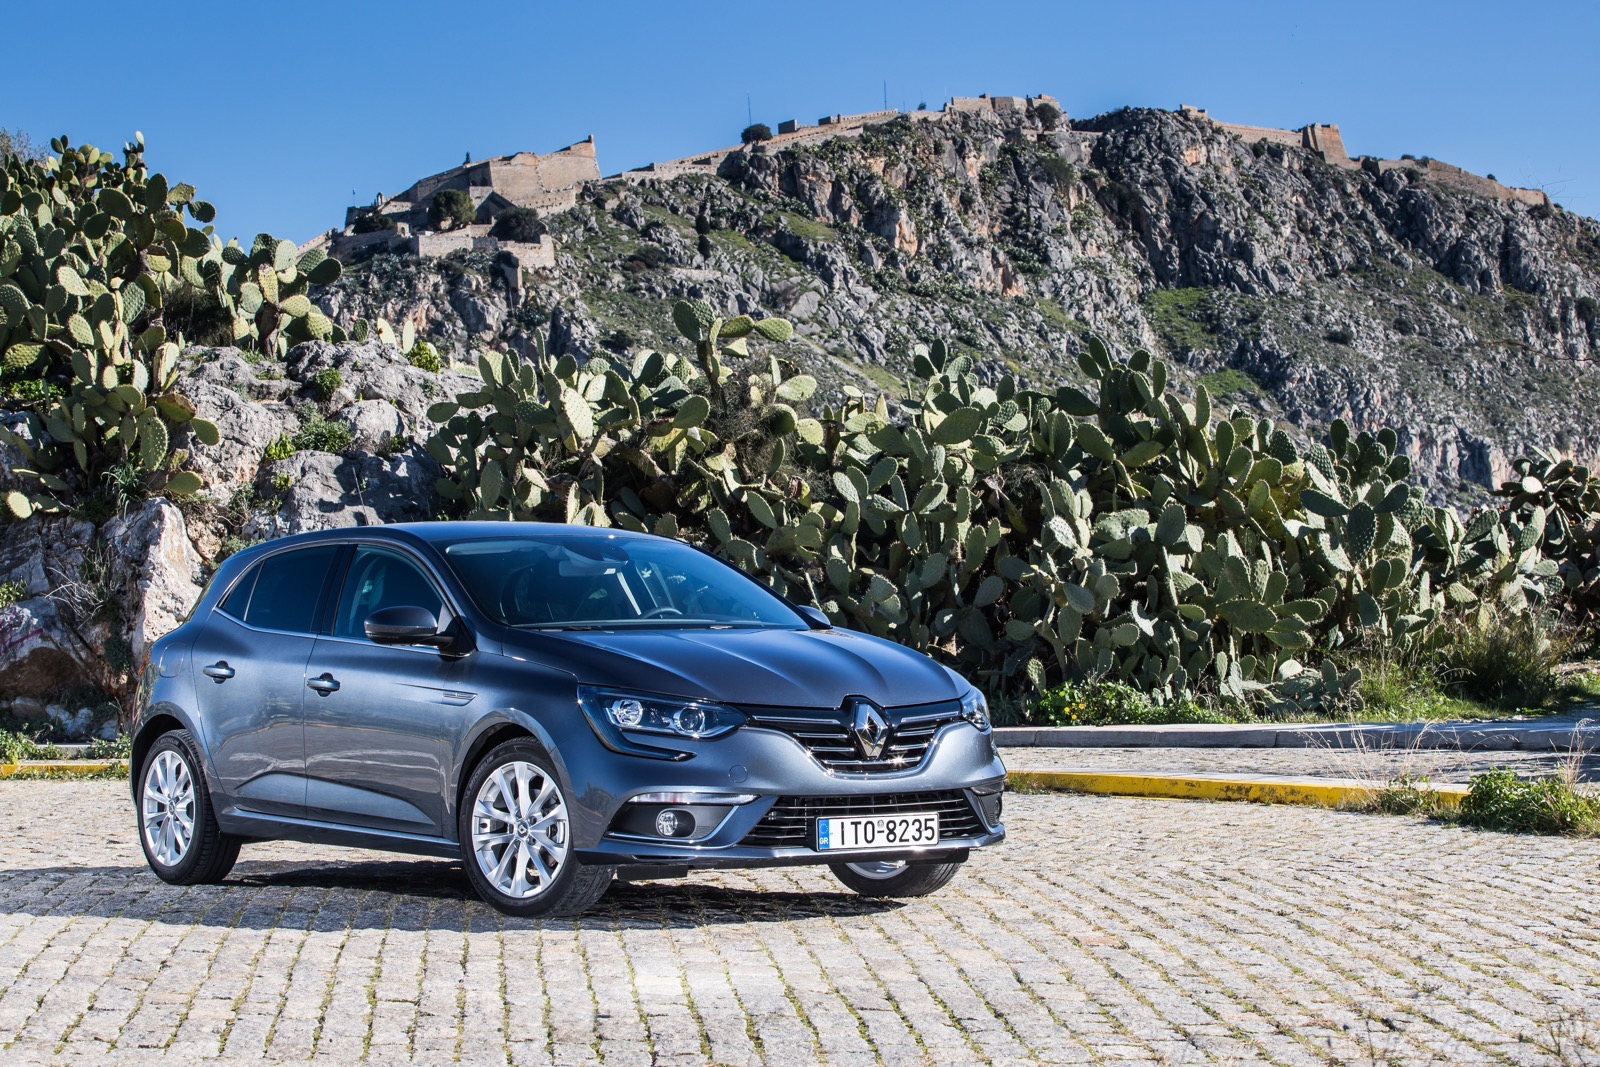 First_Drive_Renault_Megane_14